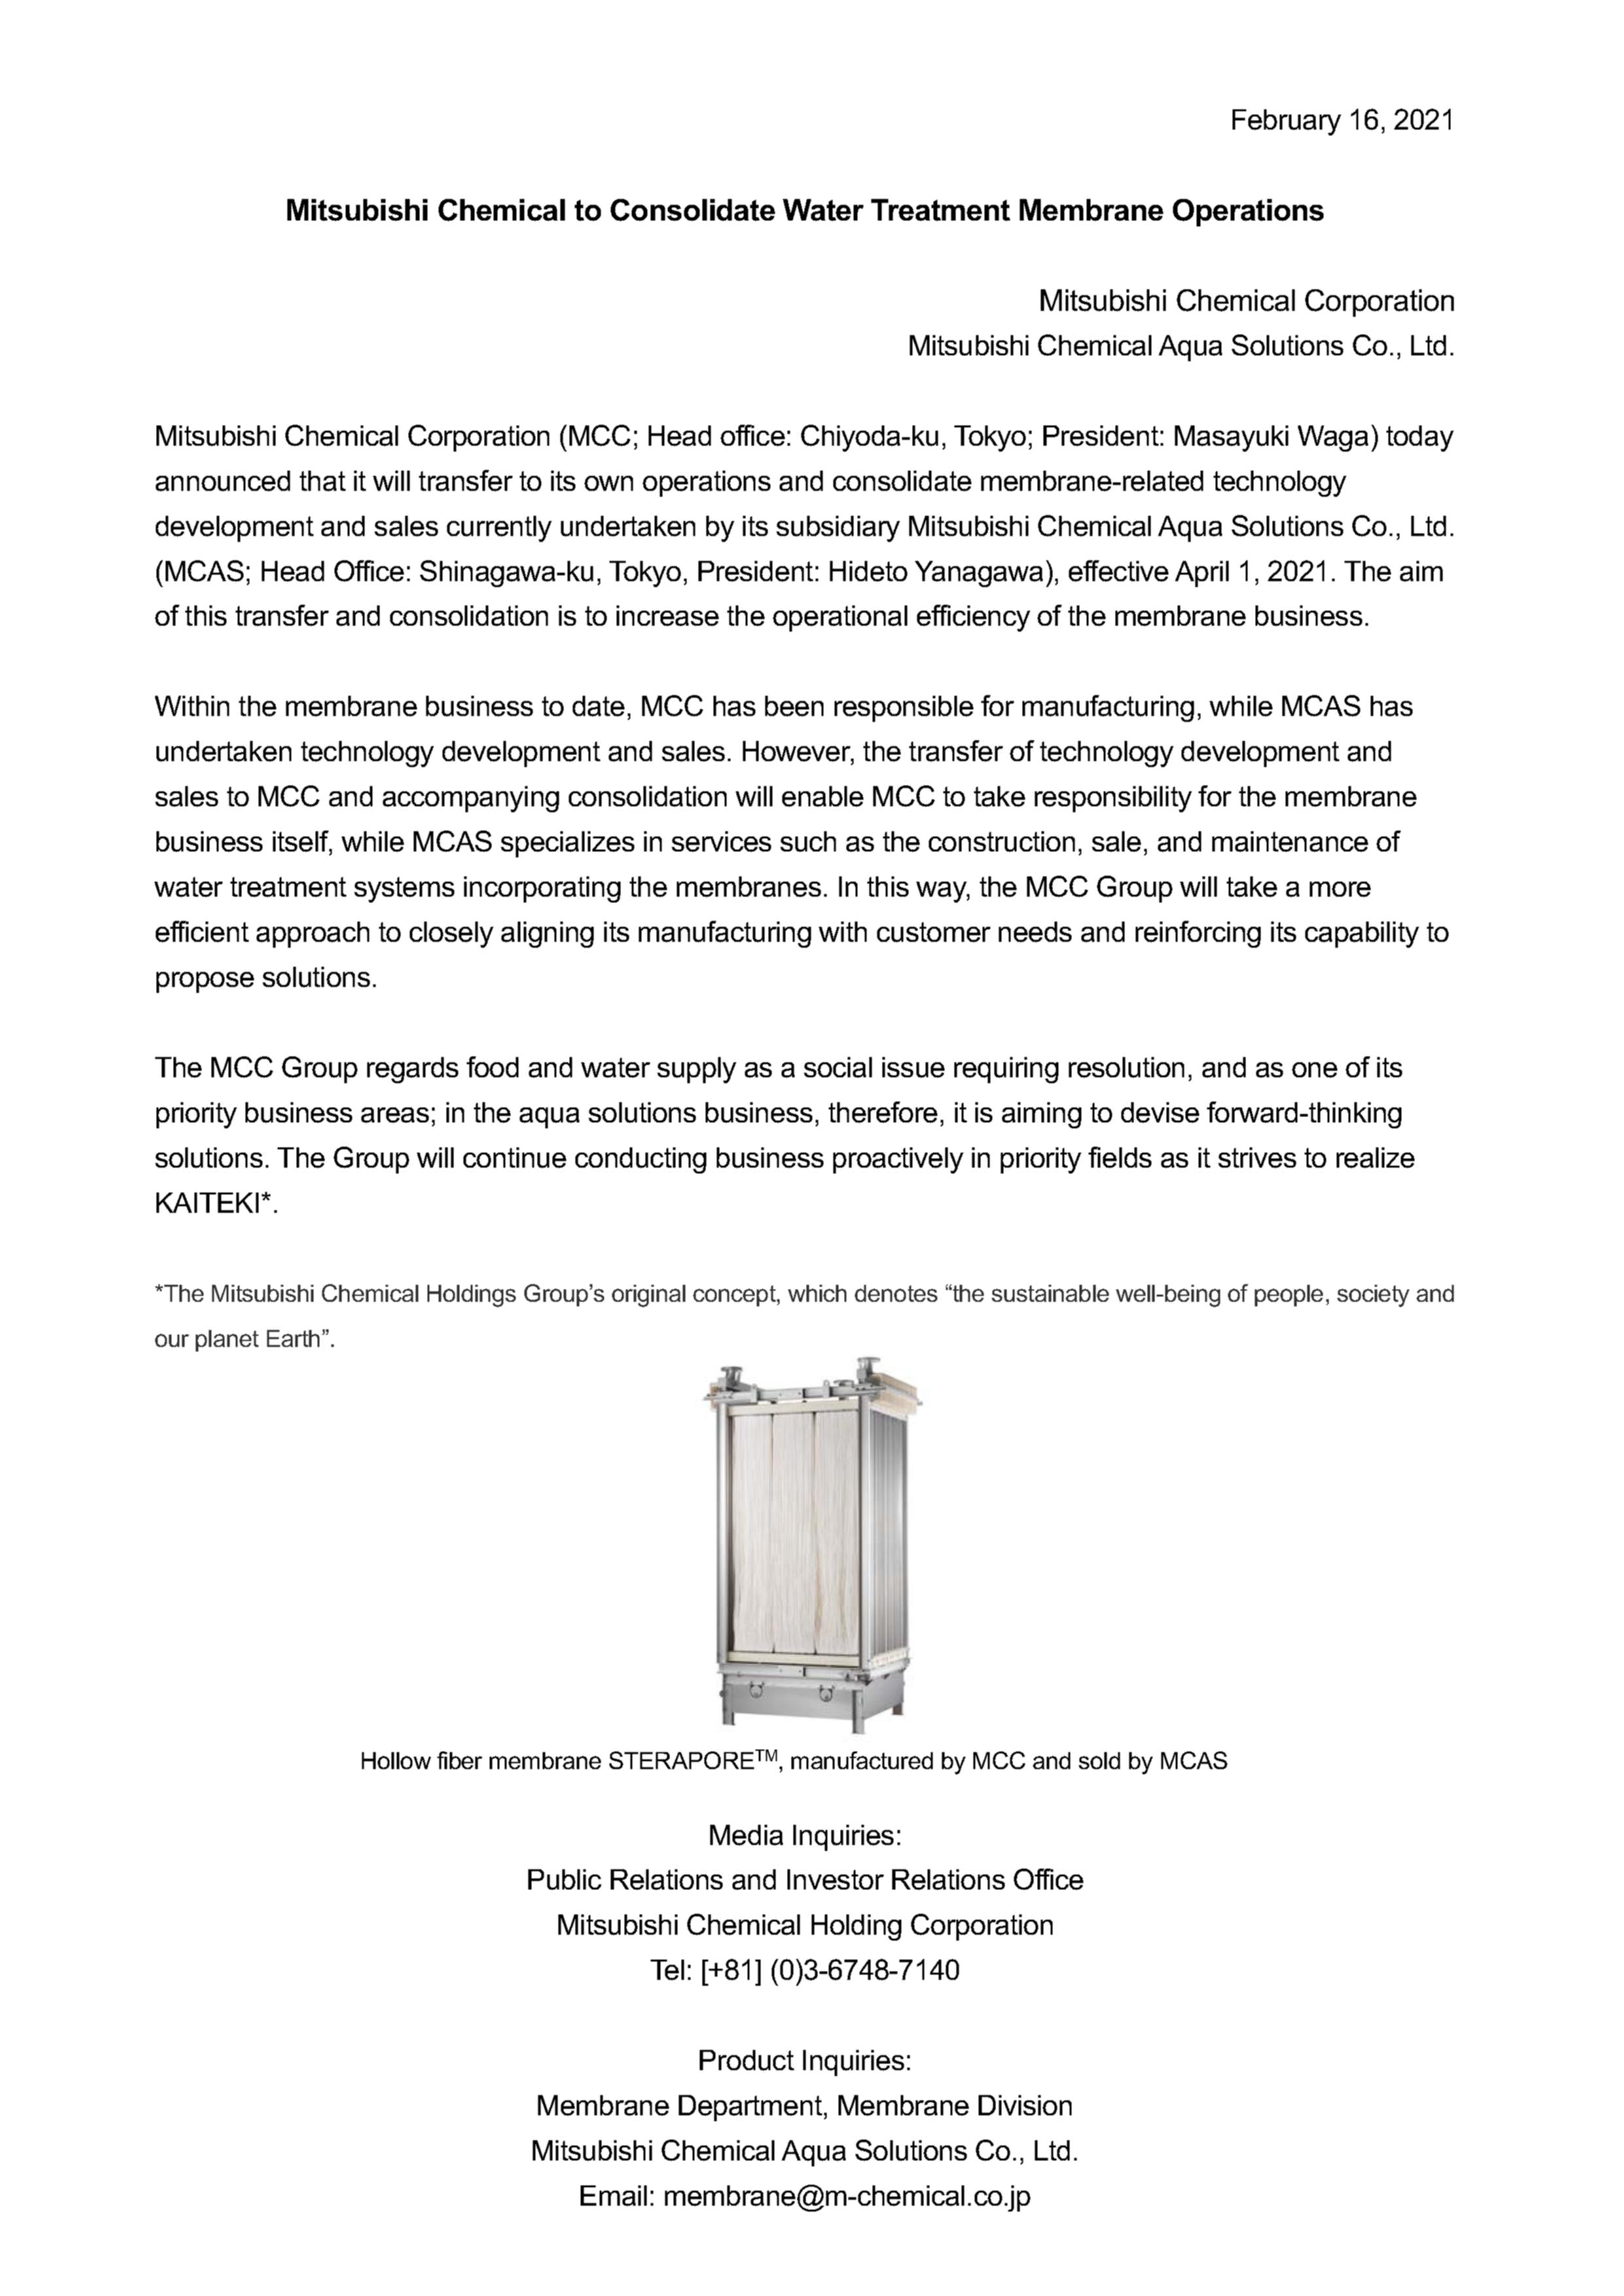 20210216_Mitsubishi Chemical to Consolidate Water Treatment Membrane Operations_Final.jpg